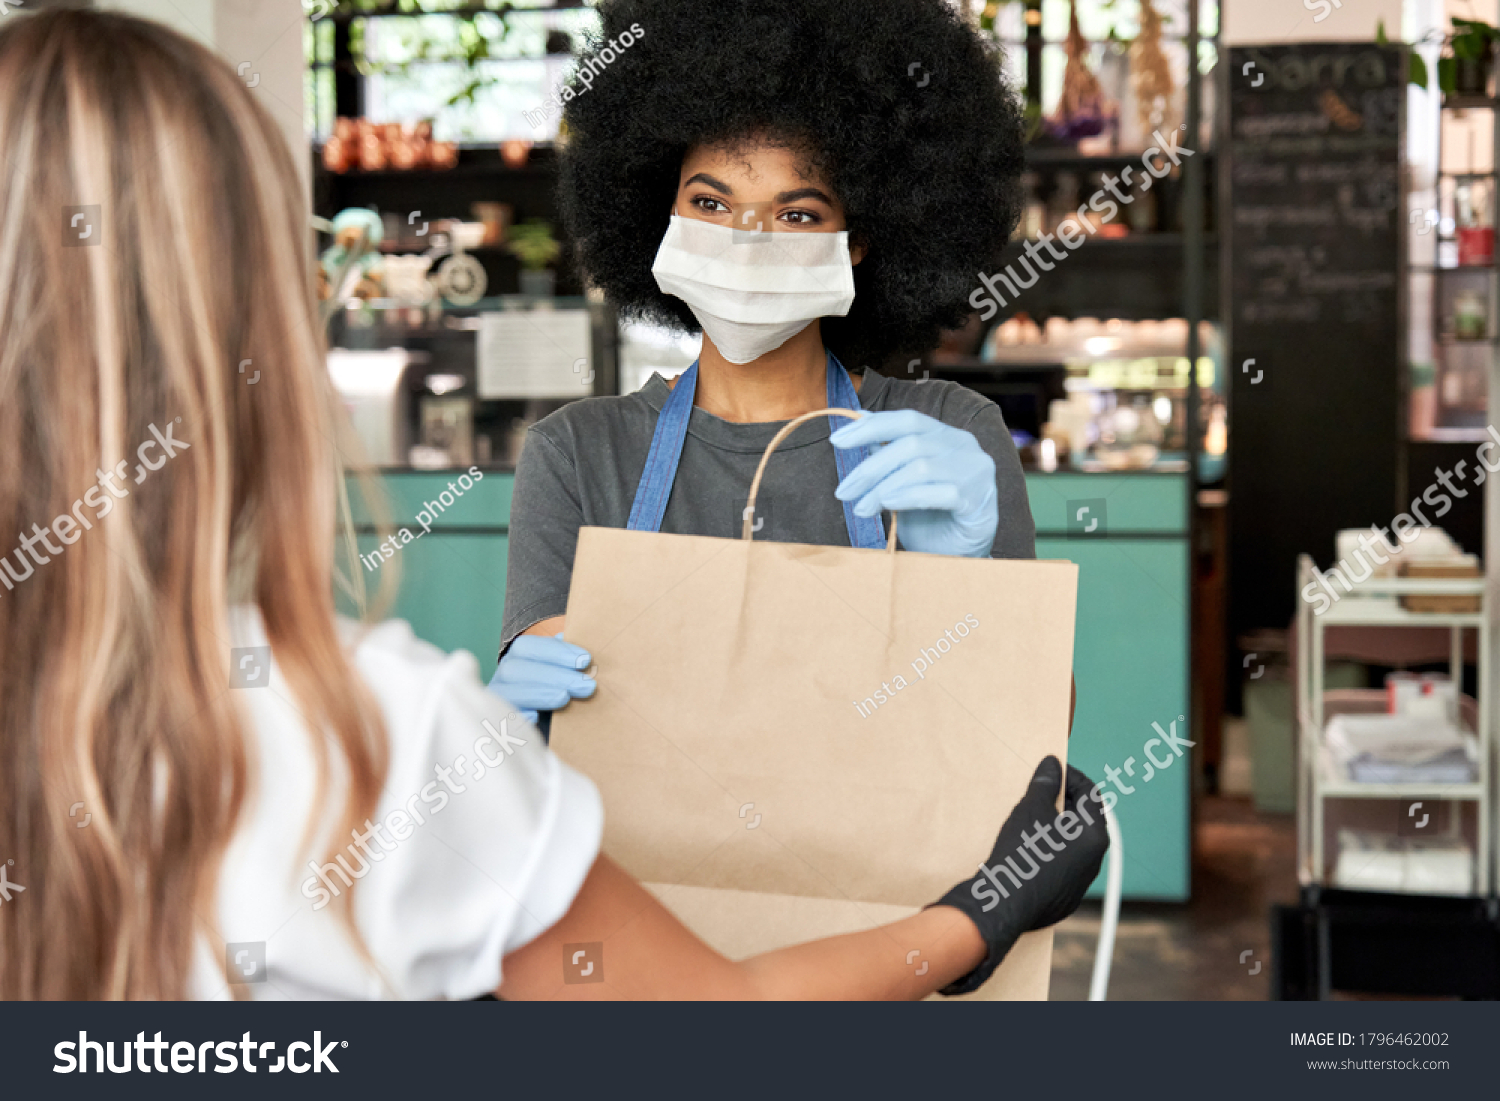 African American female cafe worker wears face mask and gloves giving takeaway food bag to customer. Mixed race waitress holding takeout order standing in coffee shop restaurant with take away client. #1796462002